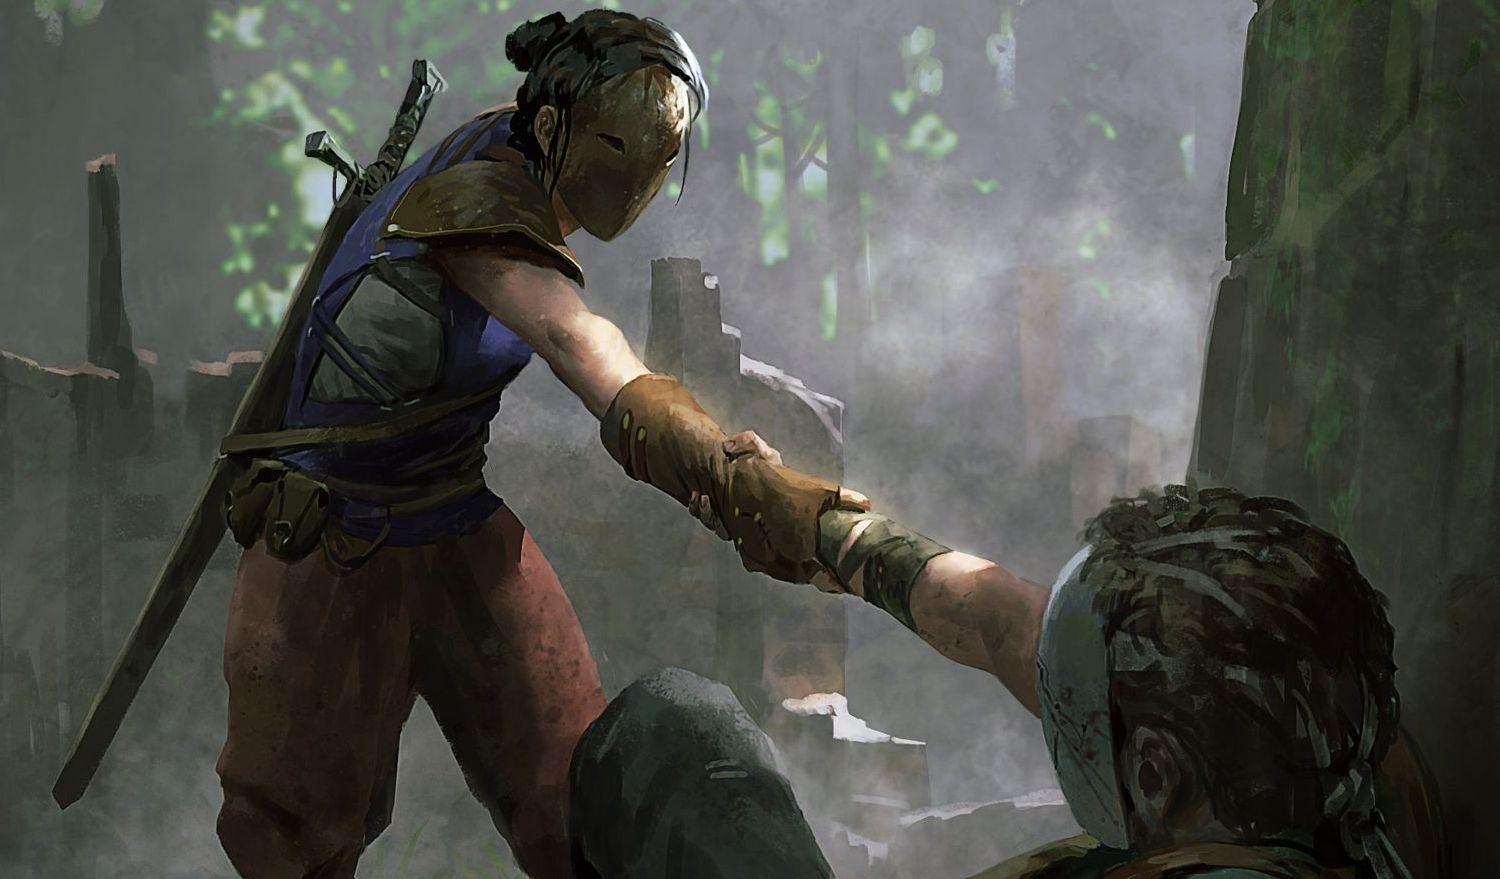 Absolver is an online martial arts action game coming to PC and consoles -  VG247